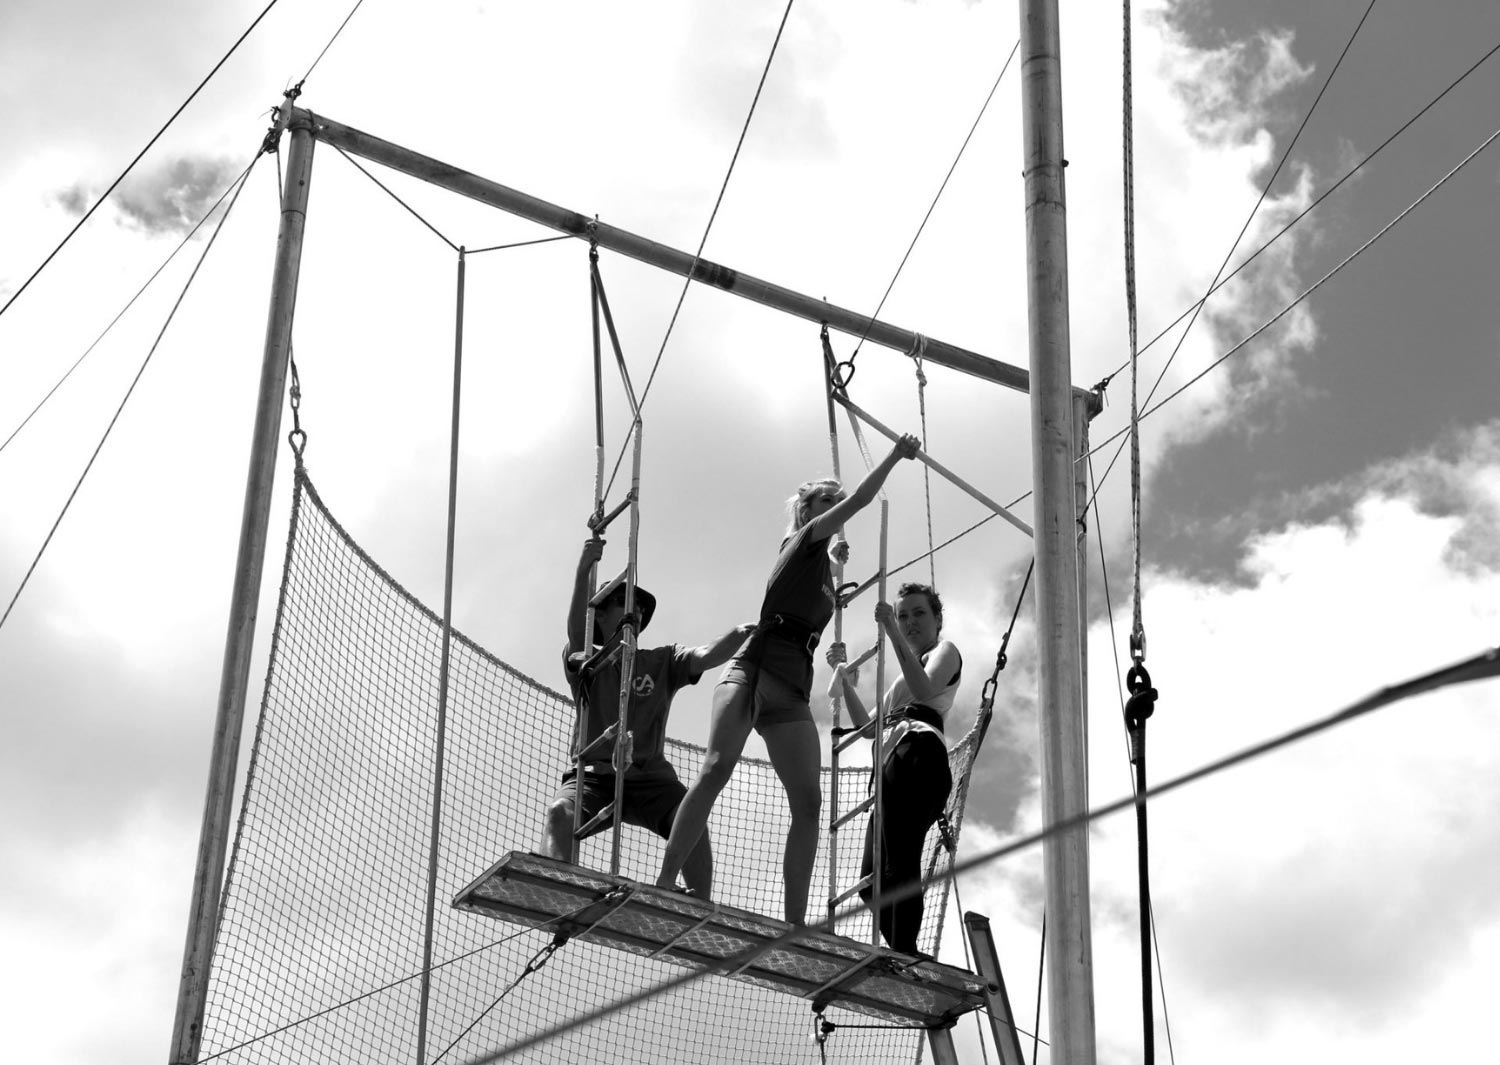 circus-arts-sydney-byron-bay-brisbane-flying-trapeze-circus-coach-career-job-opportunity-2